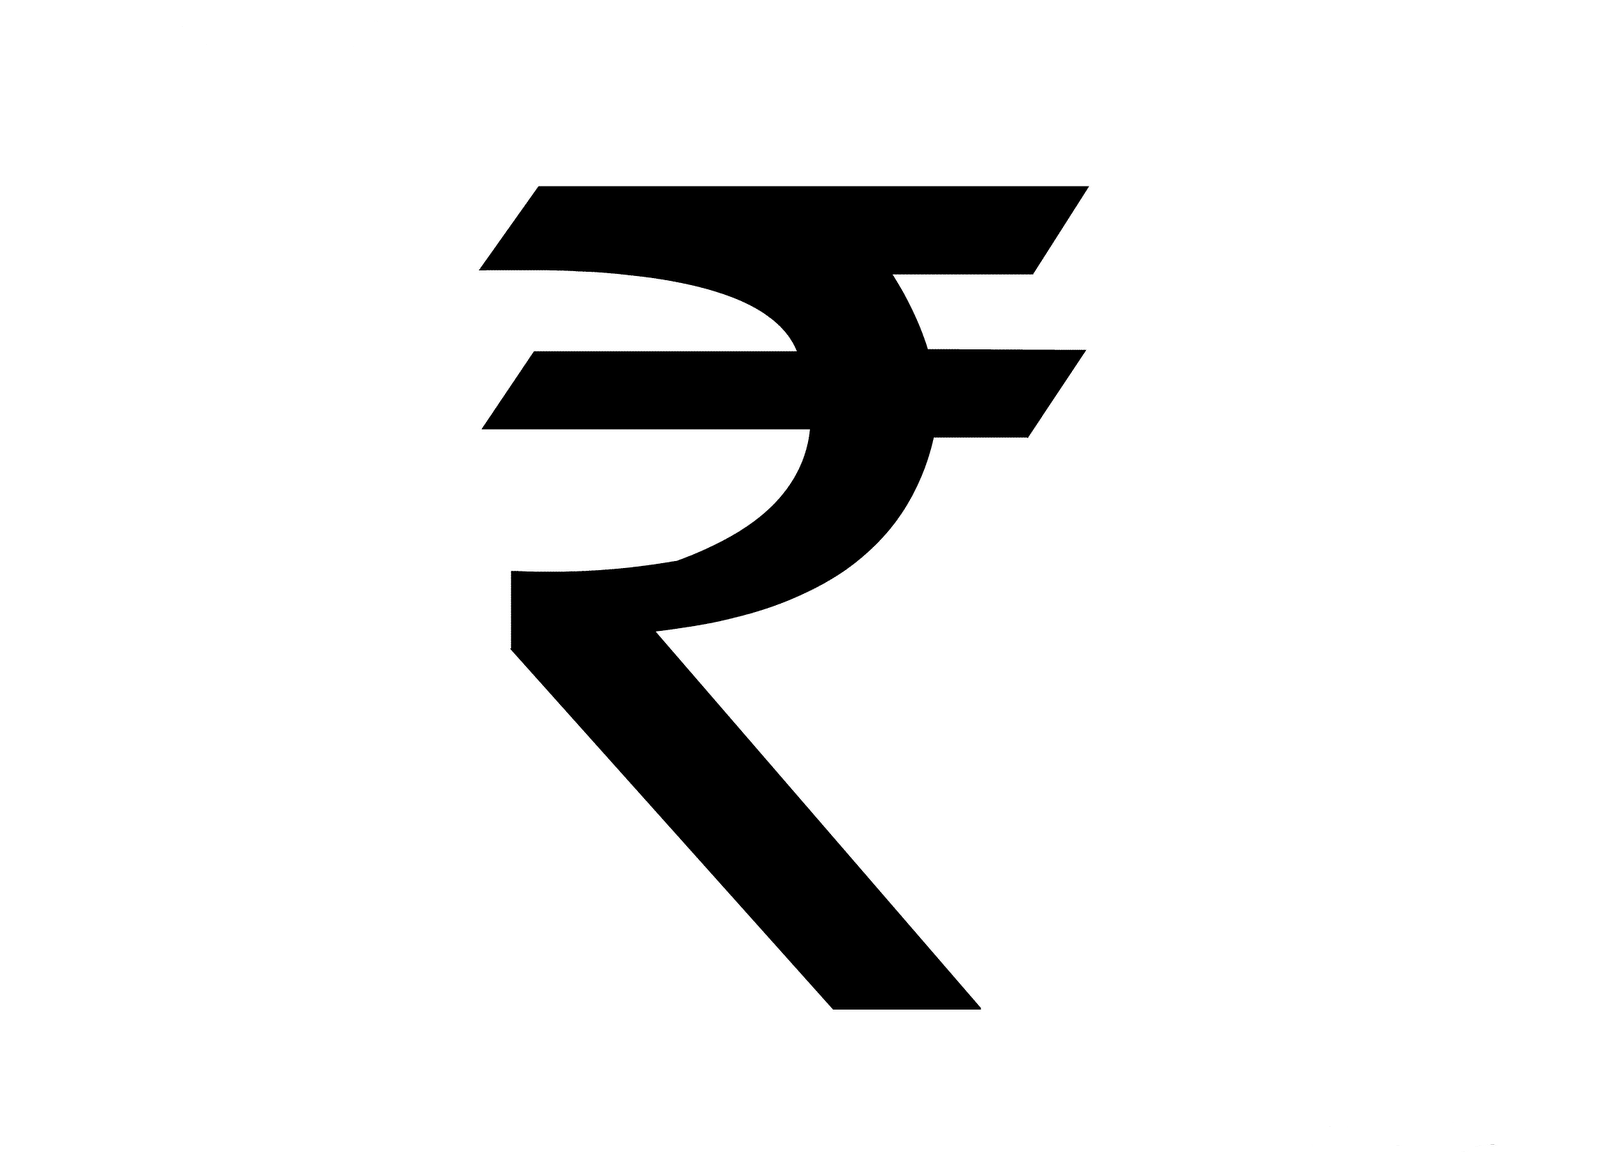 How To Add A Rupee Symbol Or A Music Note Or A Chess Piece To A